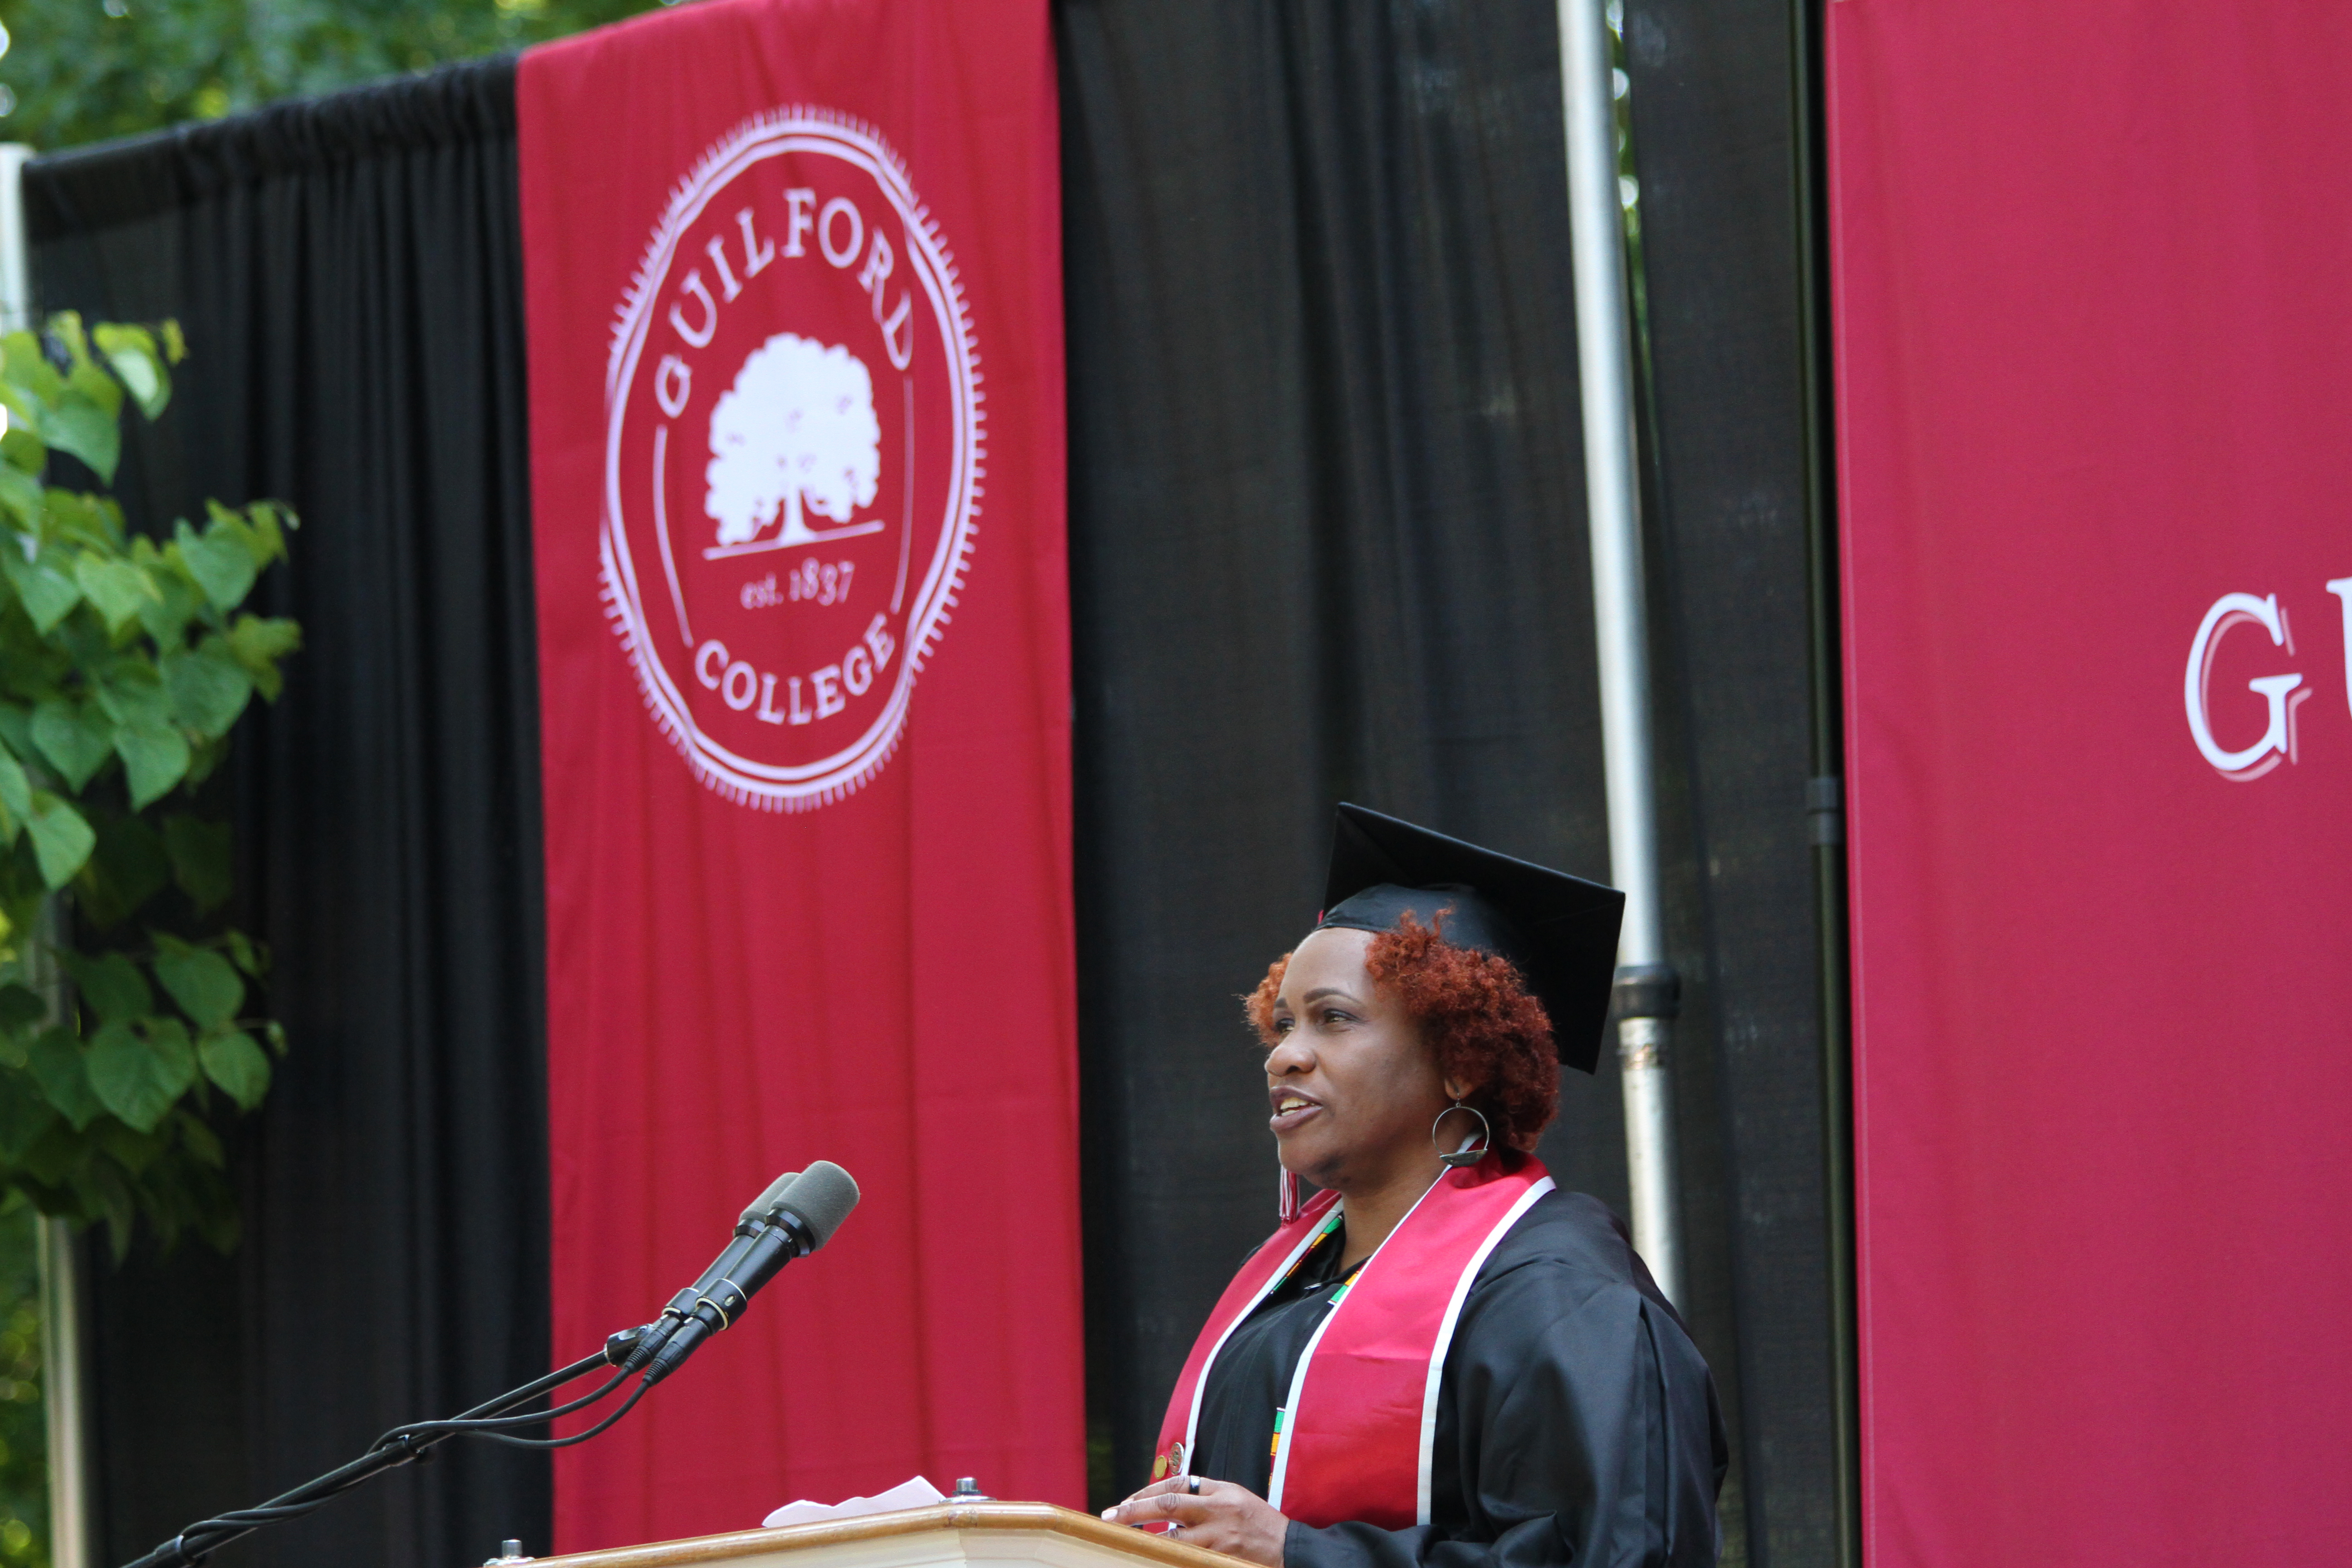 CCE Student Speaker Theresa Gregory.